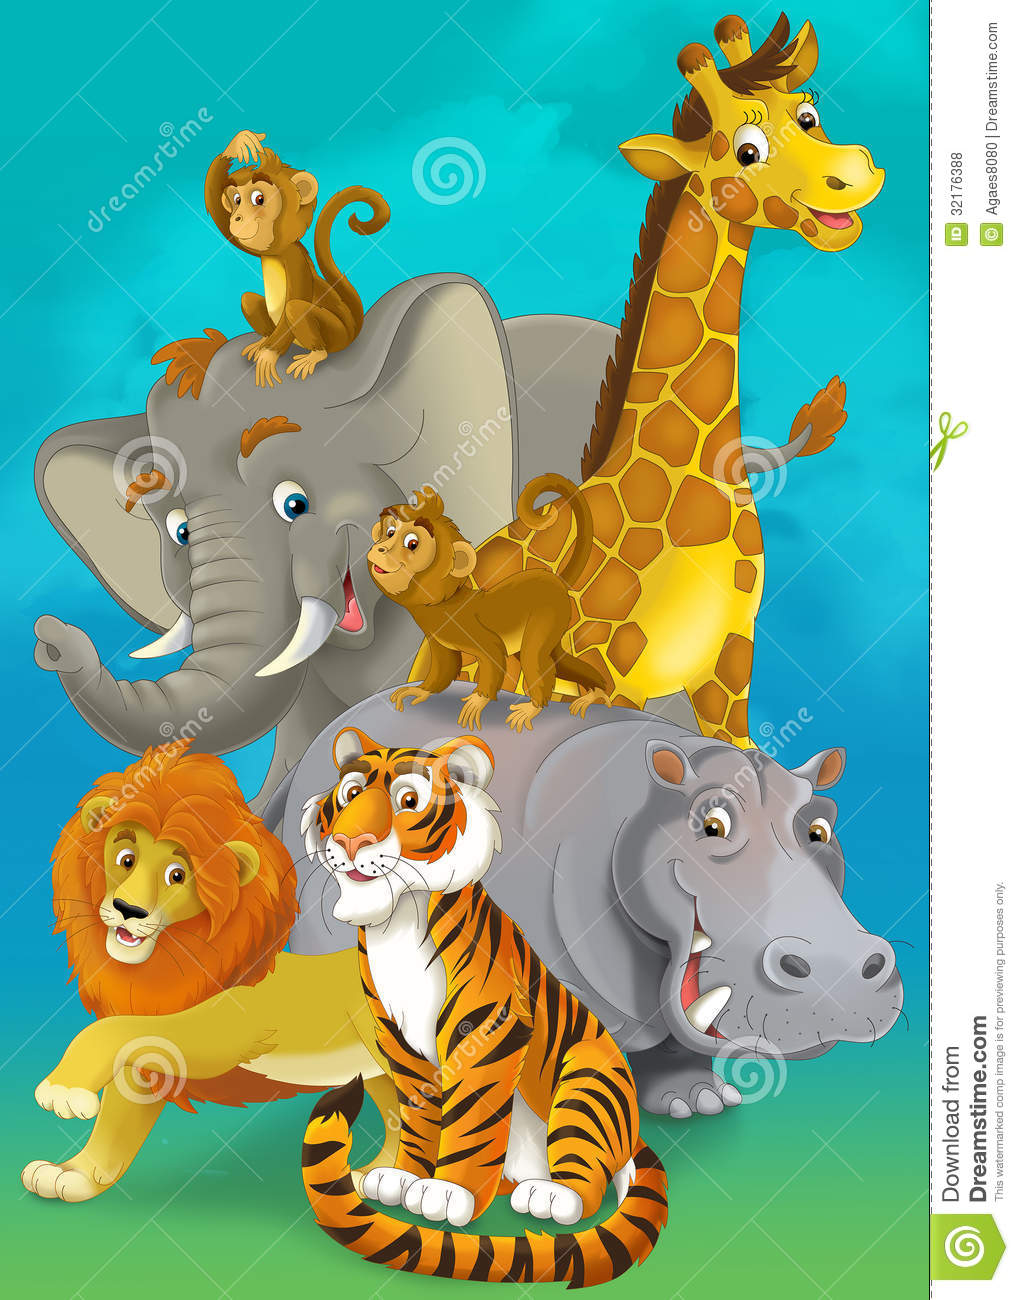 Cartoon Safari Illustration For The Children Royalty